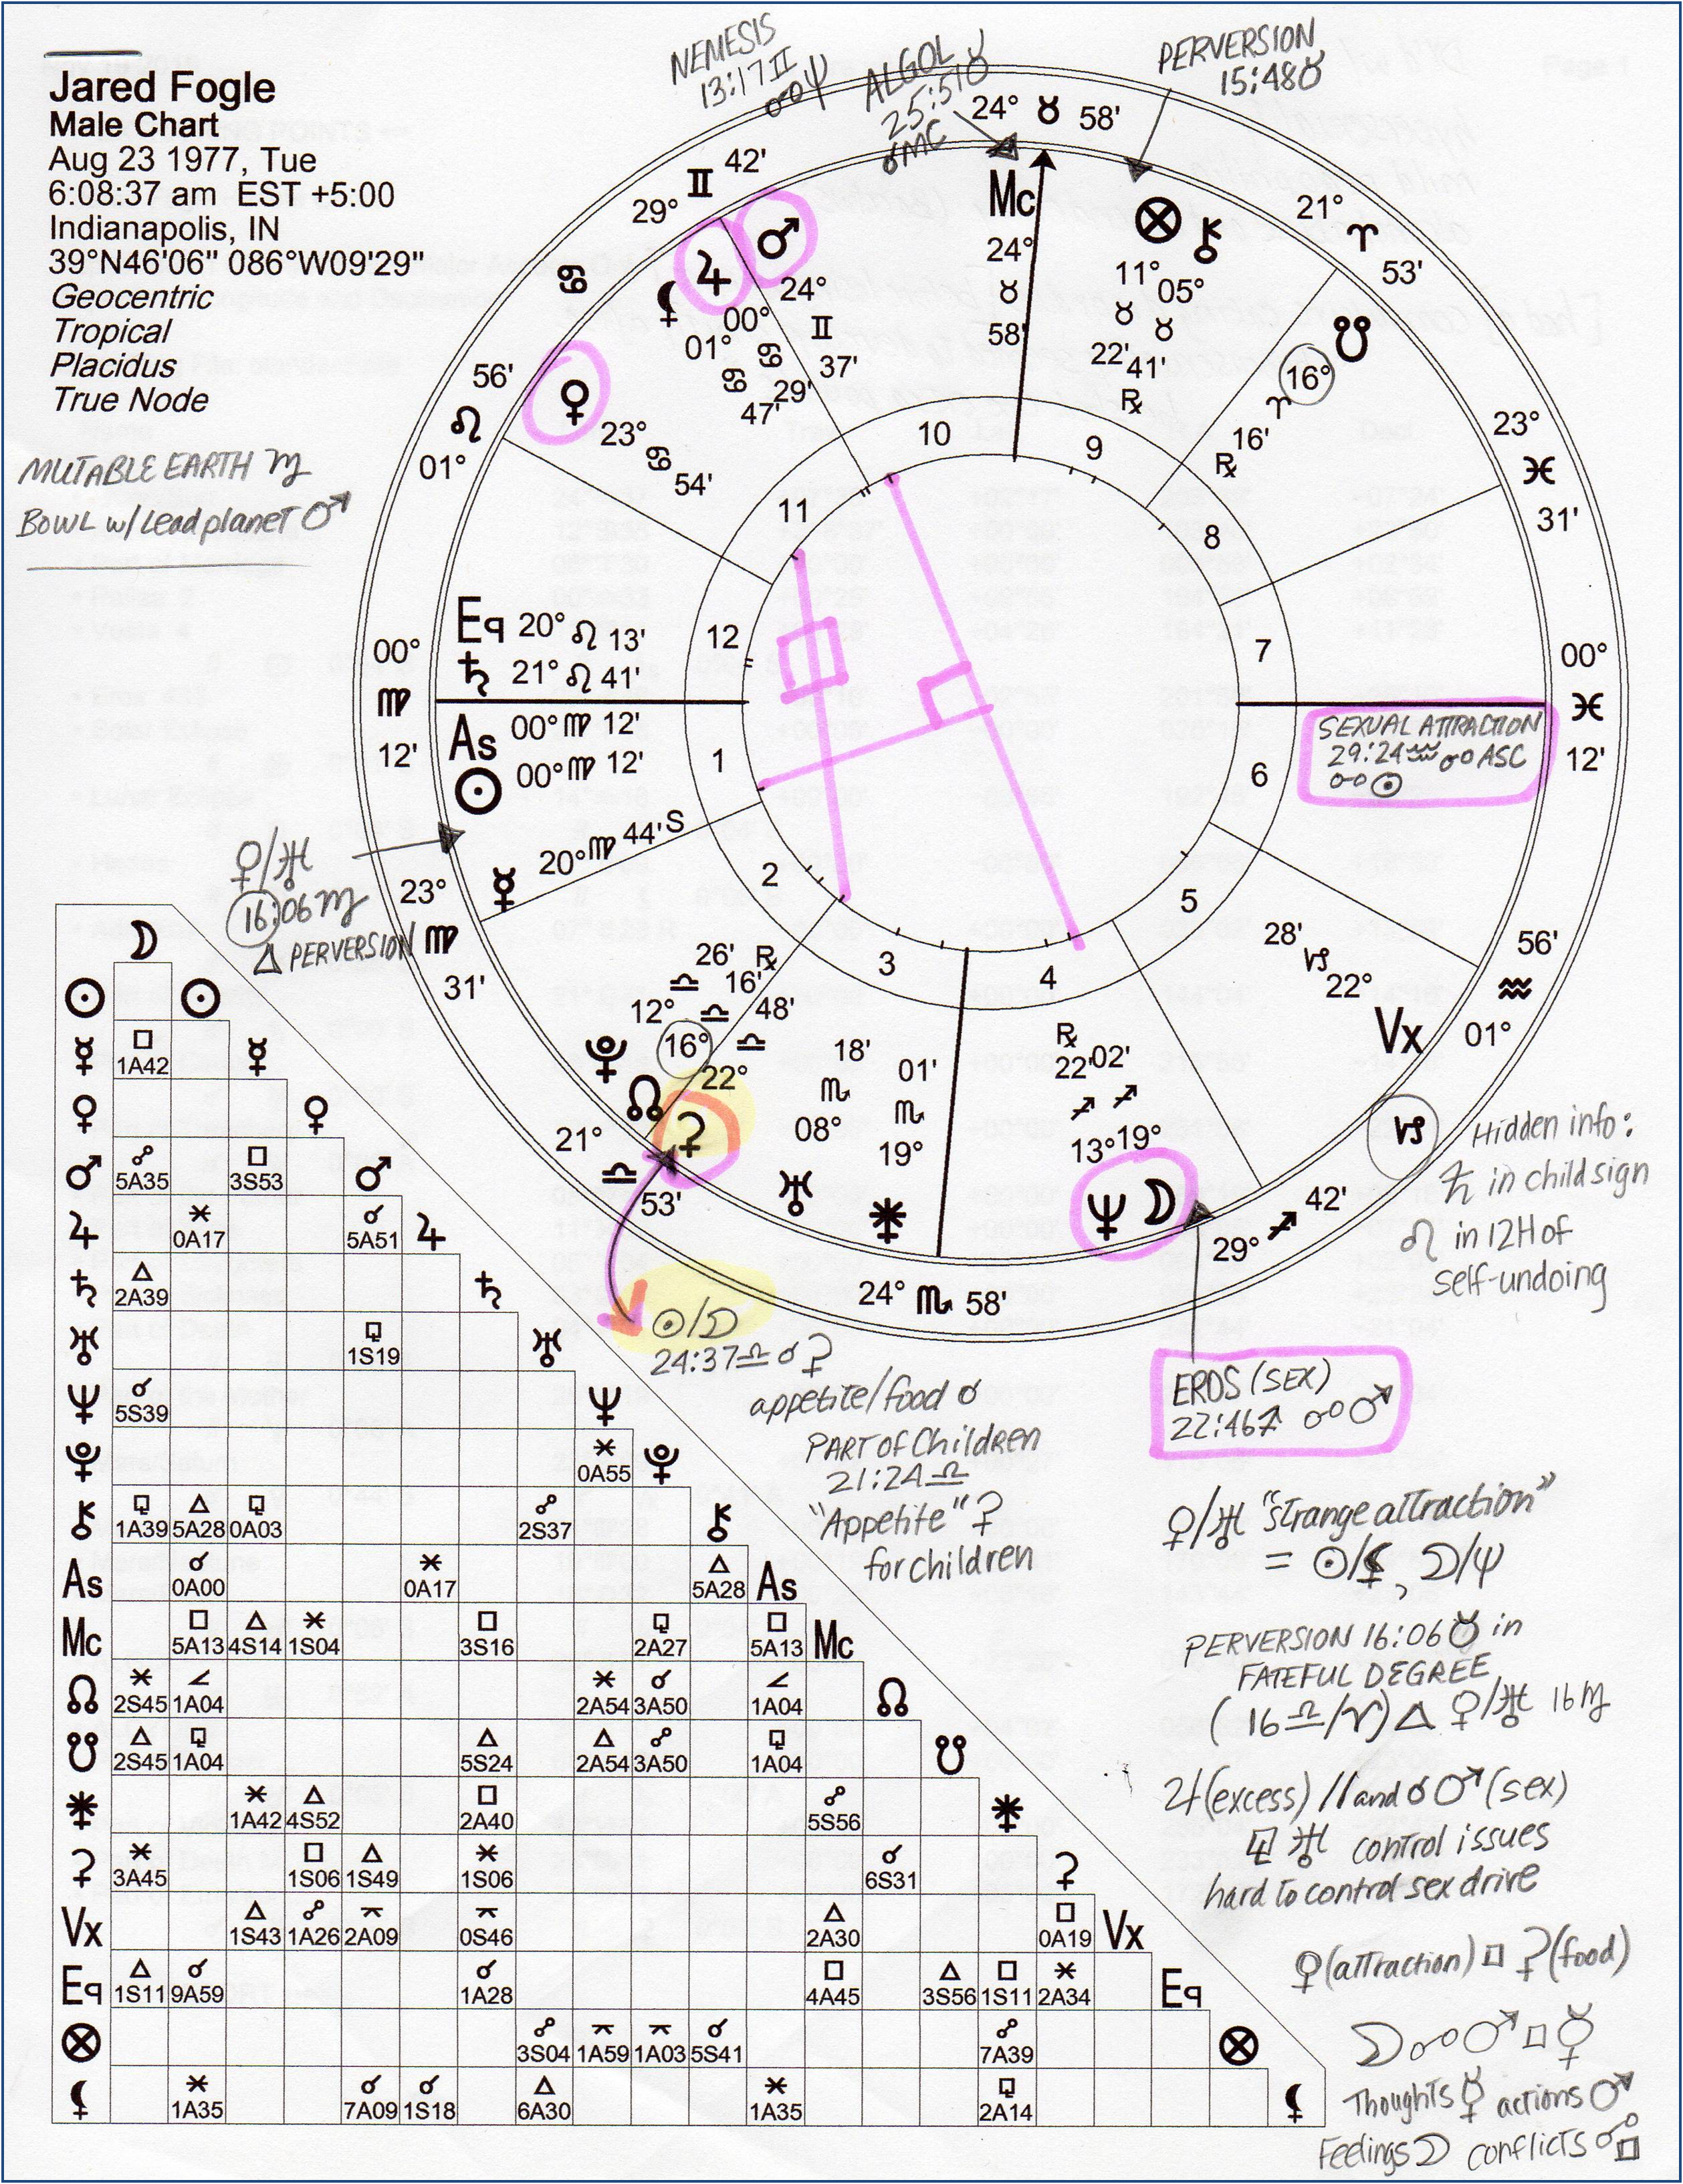 Jared Fogle Natal Astrology Chart (SUN on ASCENDANT) http://livingwithcards.com